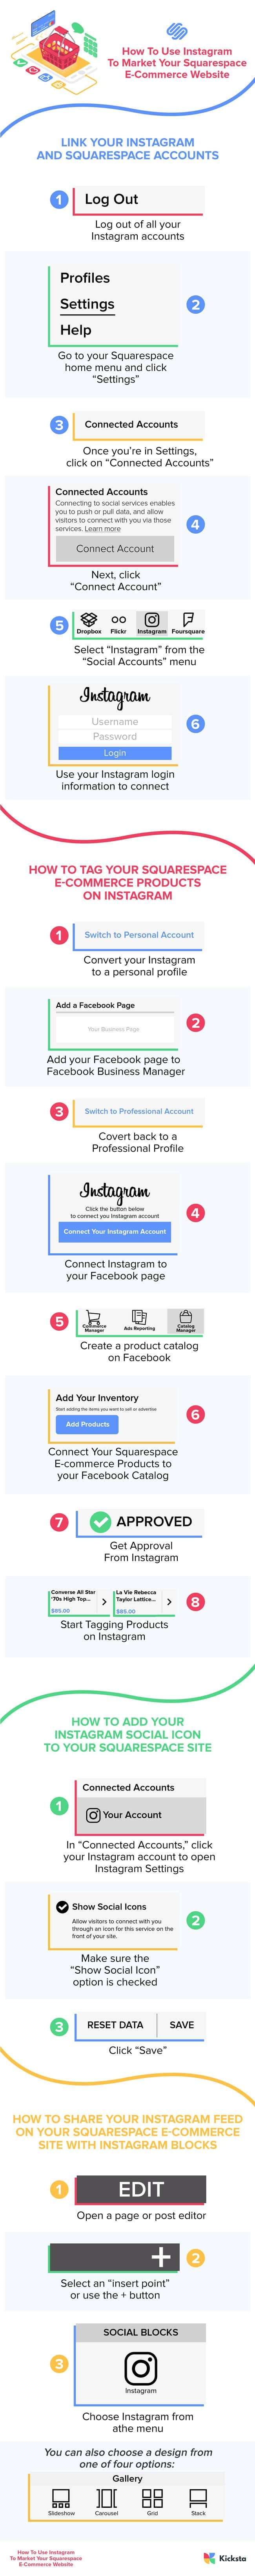 How To Use Instagram To Market Your Squarespace Site Infographic